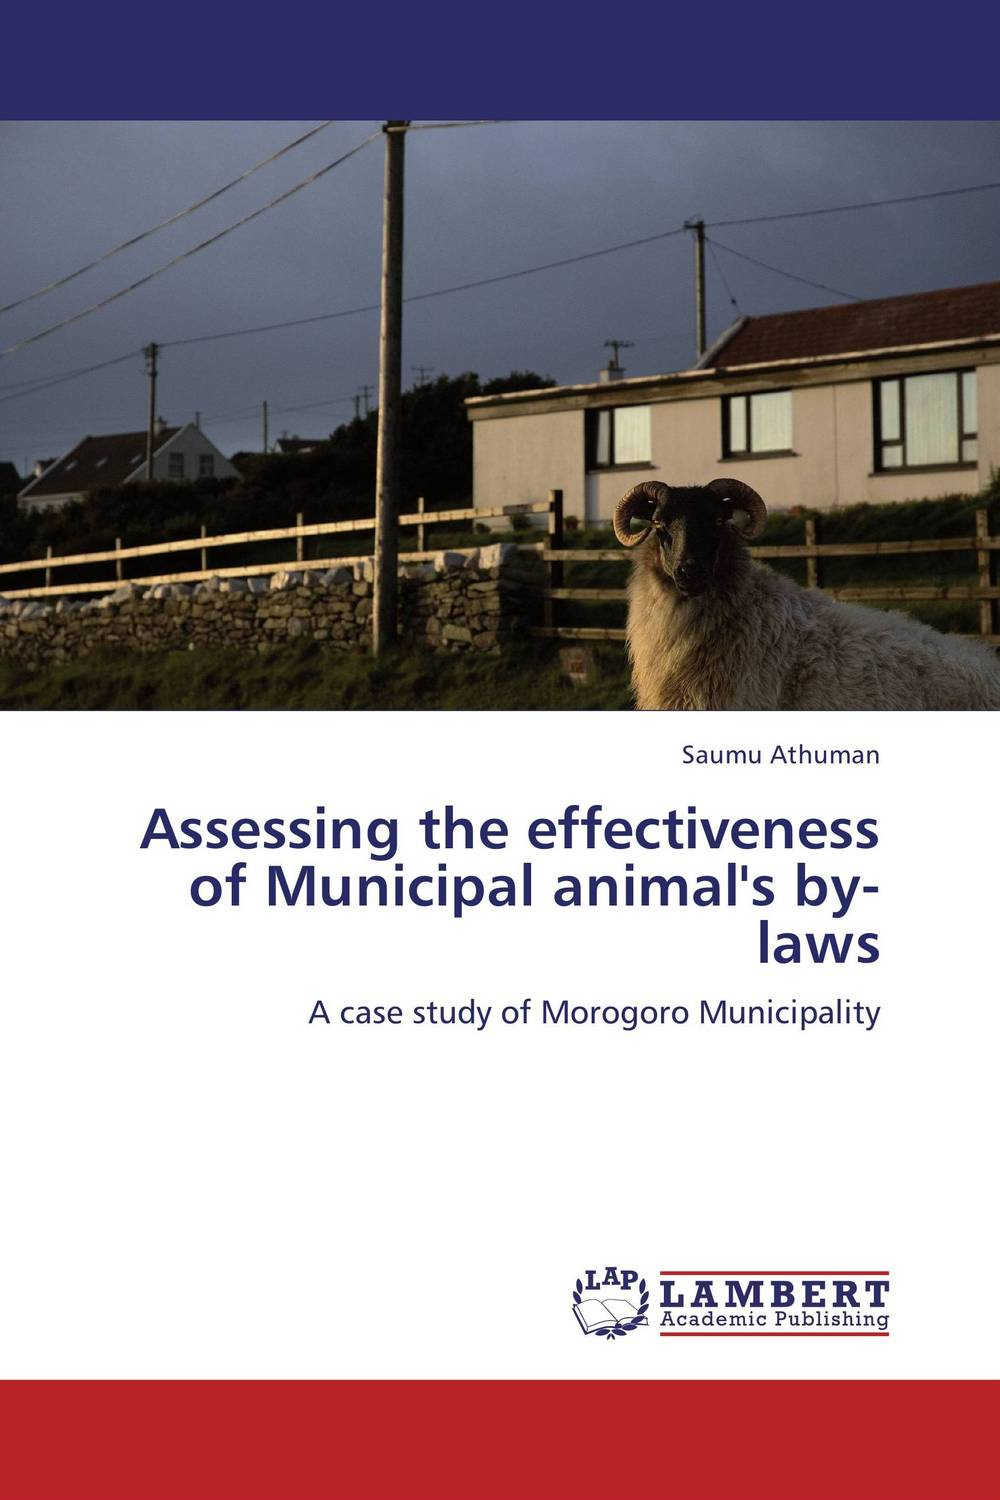 Assessing the effectiveness of Municipal animal's by-laws elena fishtik sara laws are keeping silence during the war